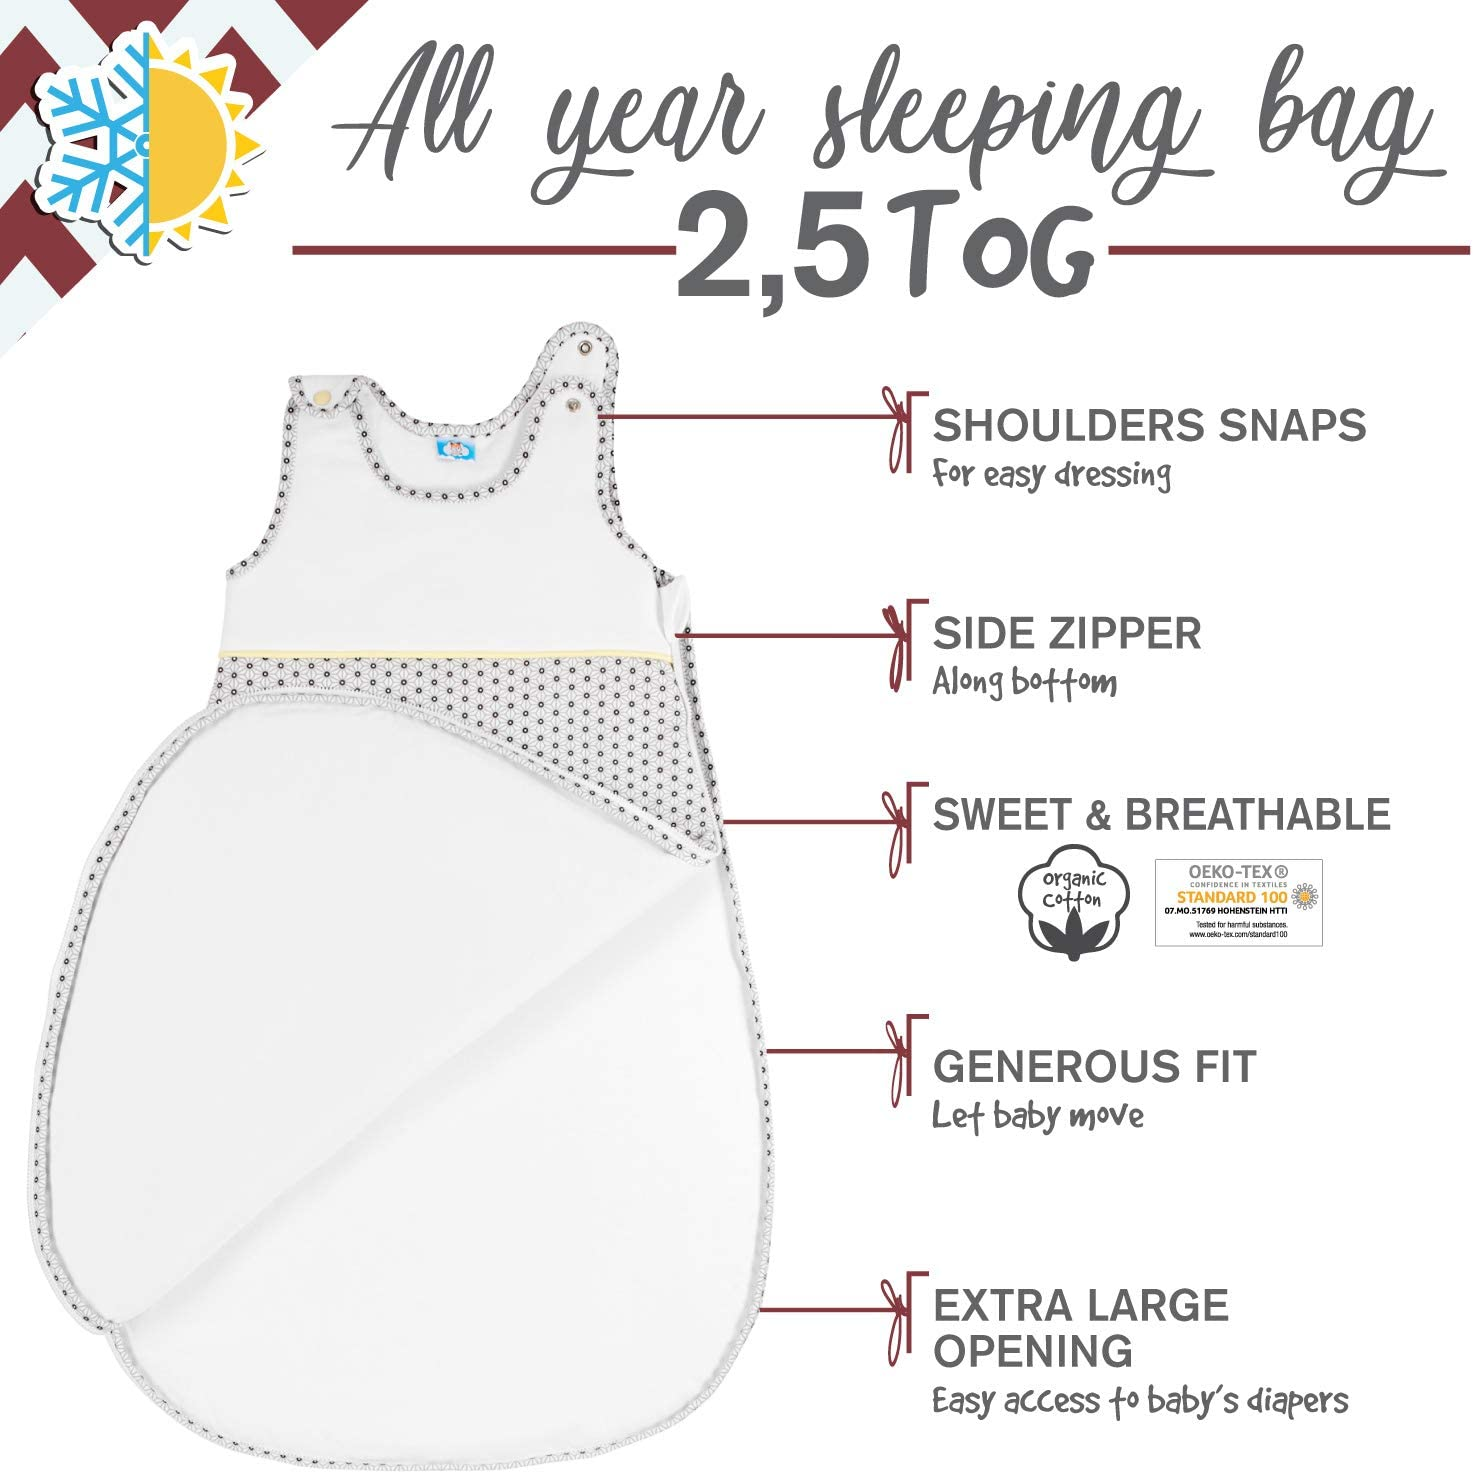 6-12 Months 80 cm by Sweety Fox Comfortable Sleeping Bag 2.5 Tog French Design Chemical- Free Guaranteed Organic Cotton Soft Baby Sleeping Bag 4 Seasons Safe Nights for Toddlers